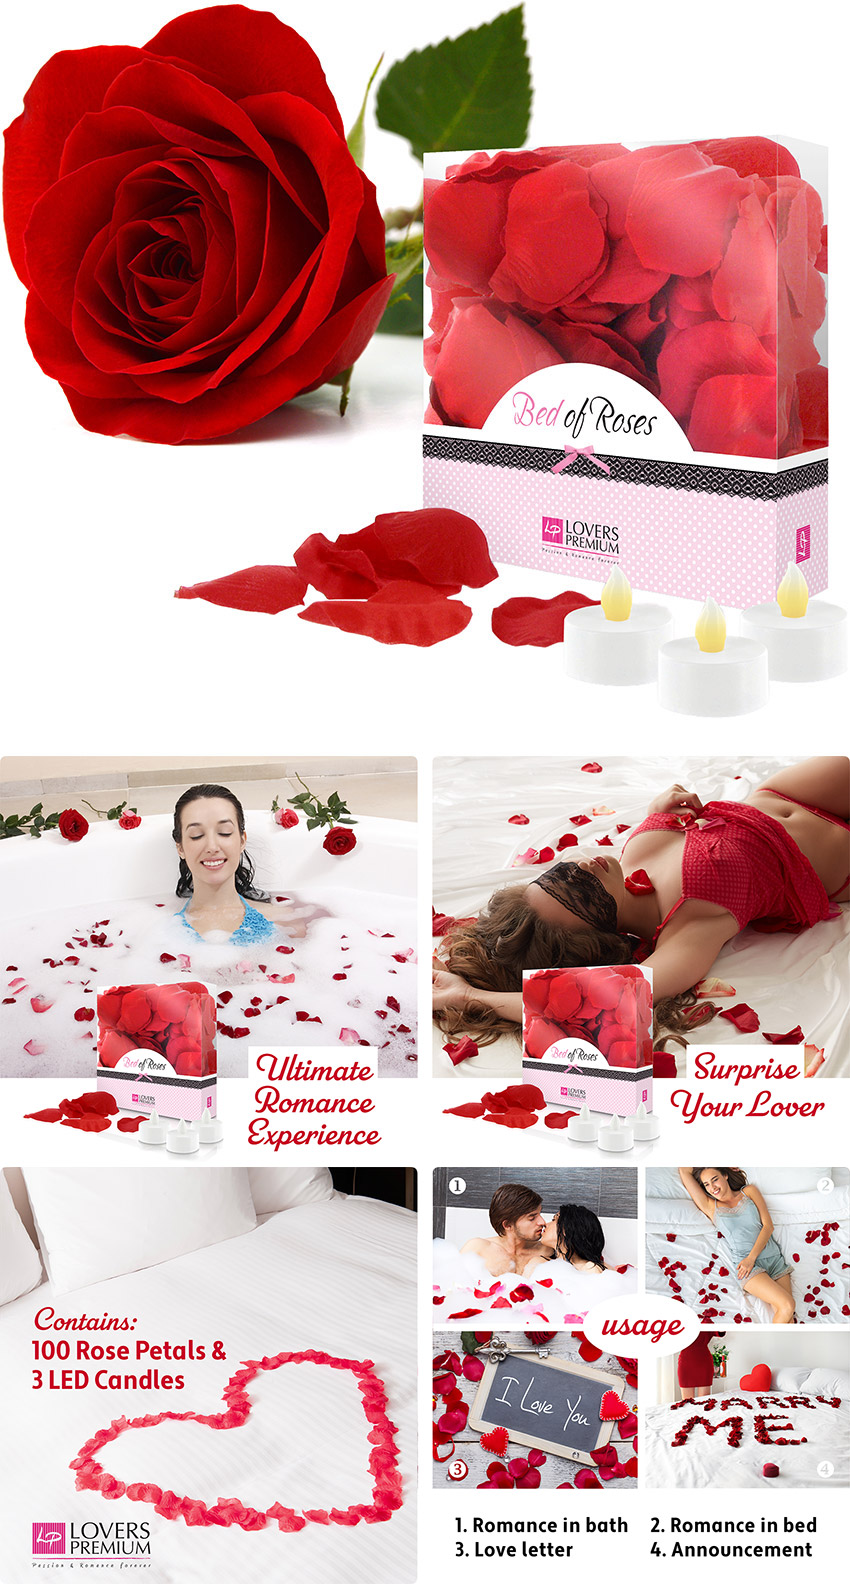 Bed of Roses - Pétales de Rose & Bougies LED - Rouge